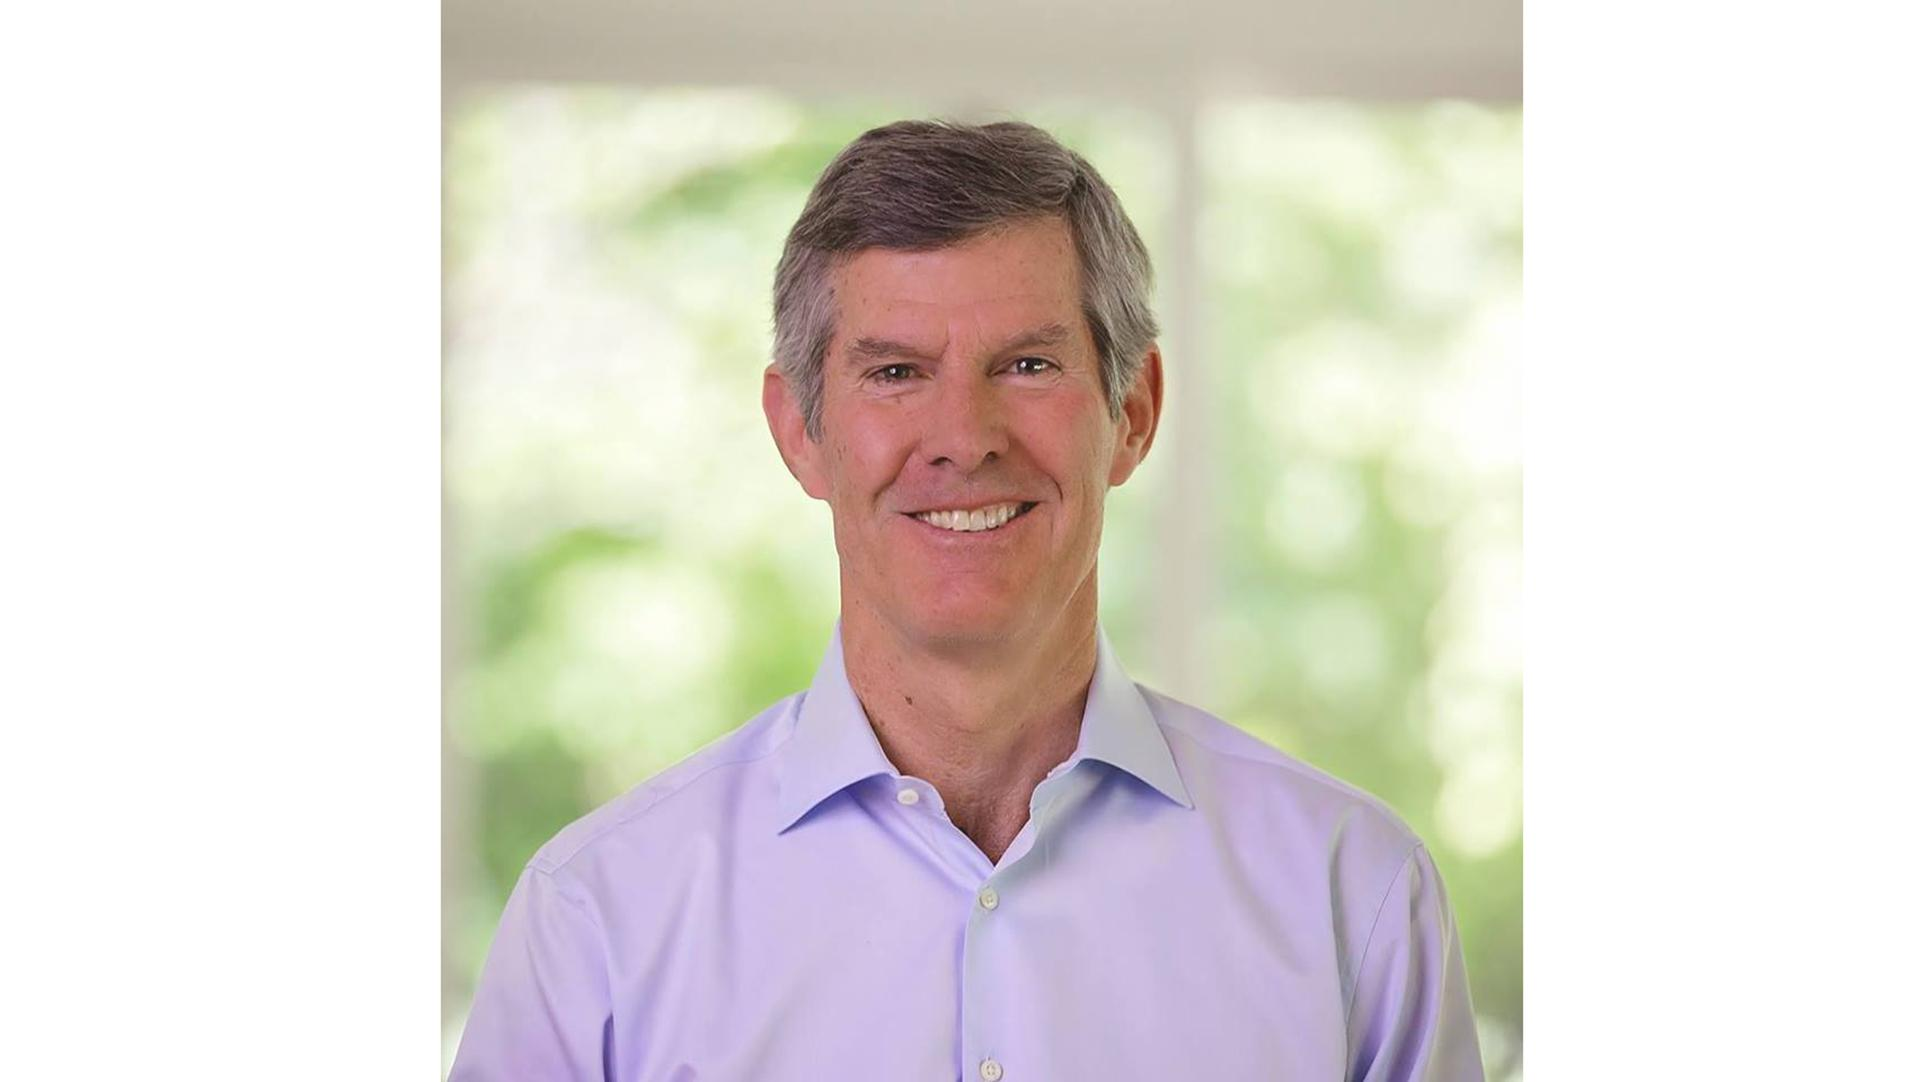 Hubbell leads in fundraising, polls ahead of primary